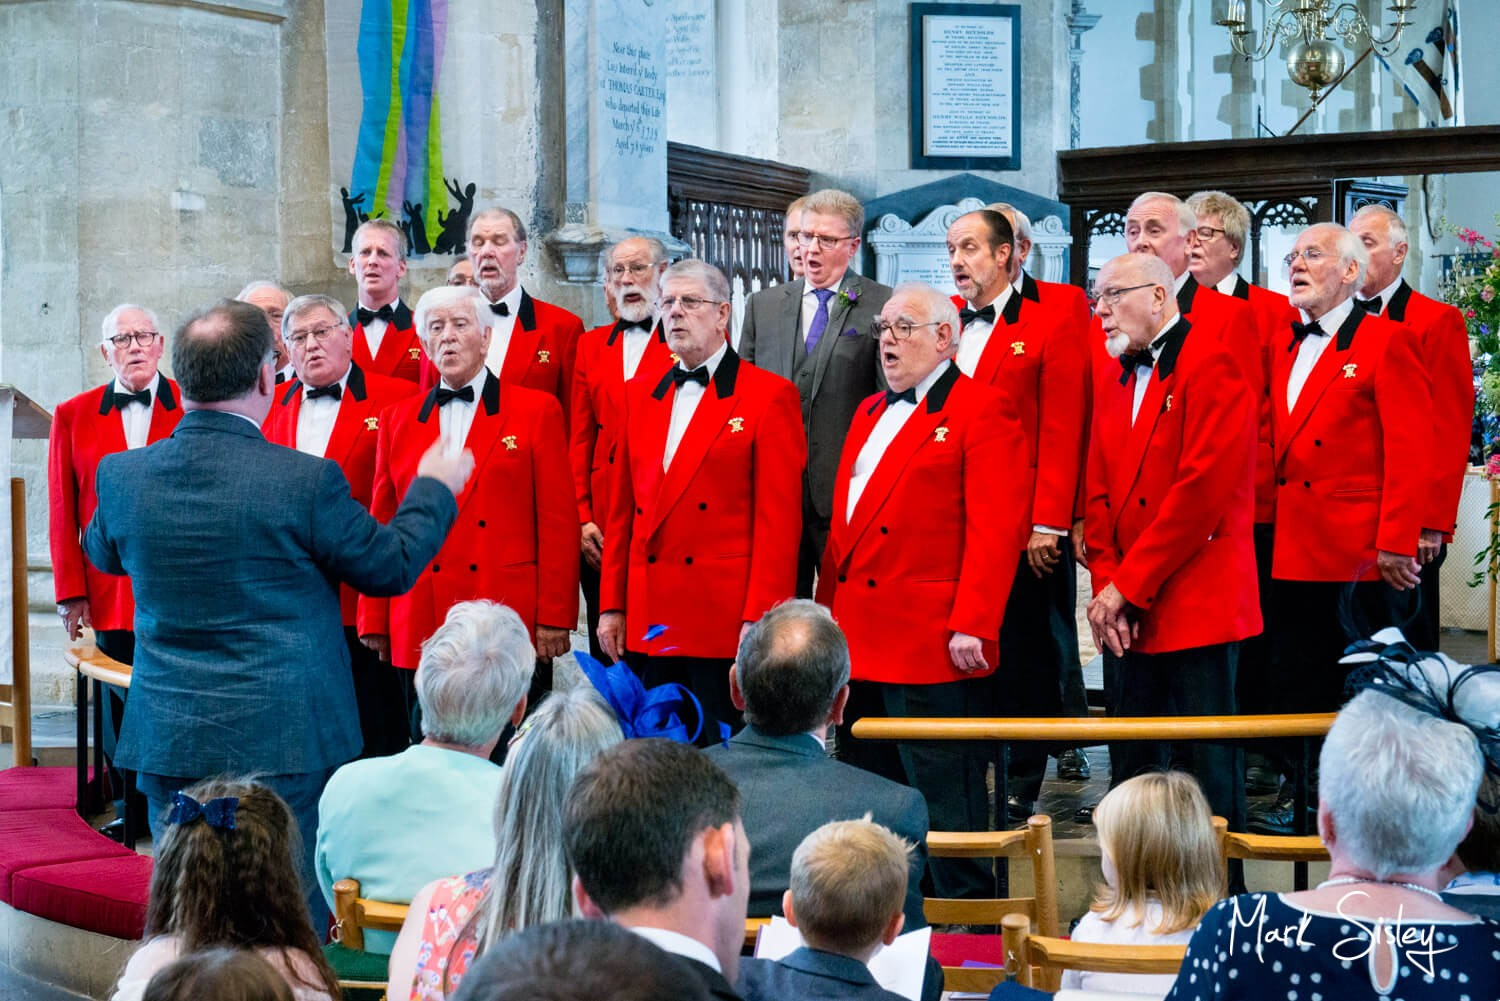 St.Mary's Church, Thame - London Welsh Male Voice Choir attending a wedding